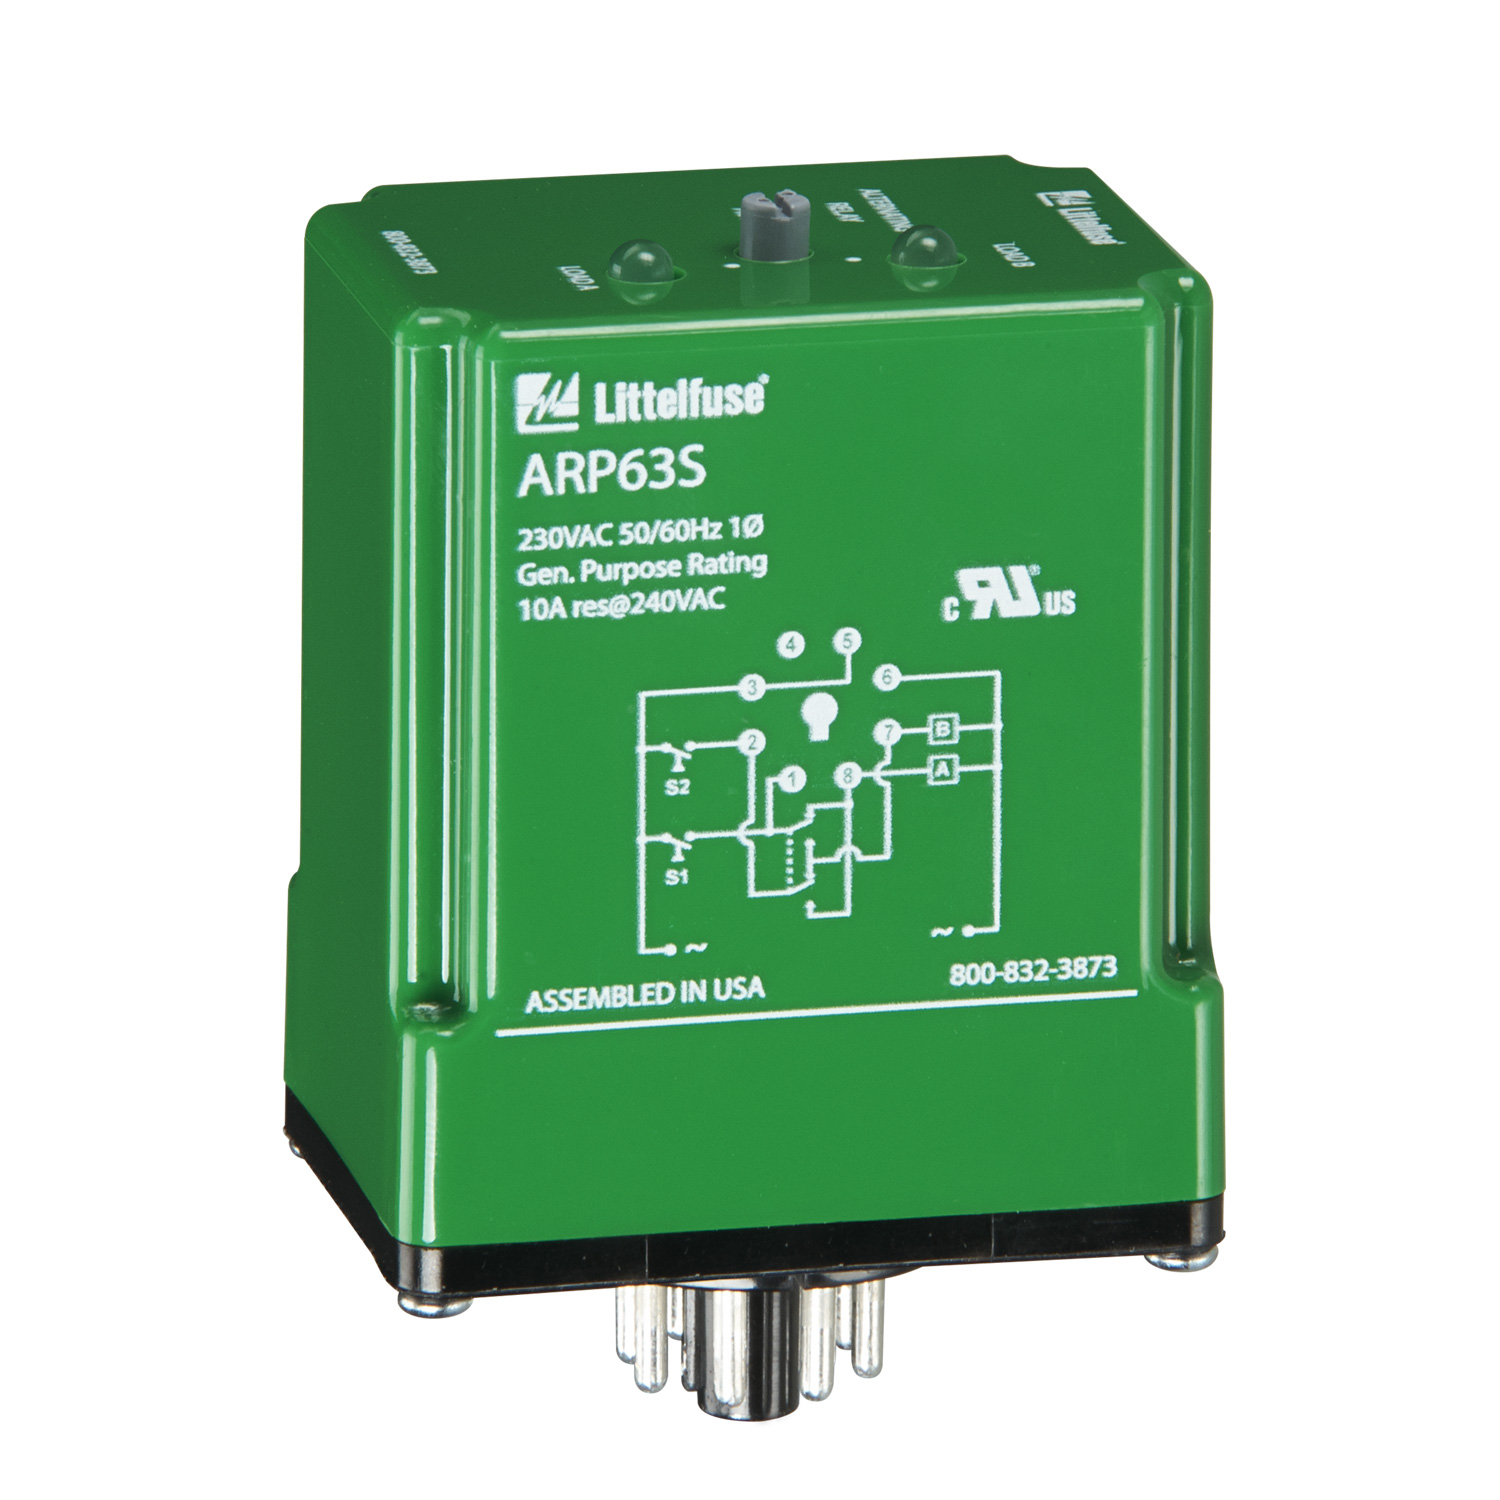 arp43s arp series alternating relays protection relays from rh littelfuse com 12 Volt Relay Wiring Diagrams 12 Volt Relay Wiring Diagrams